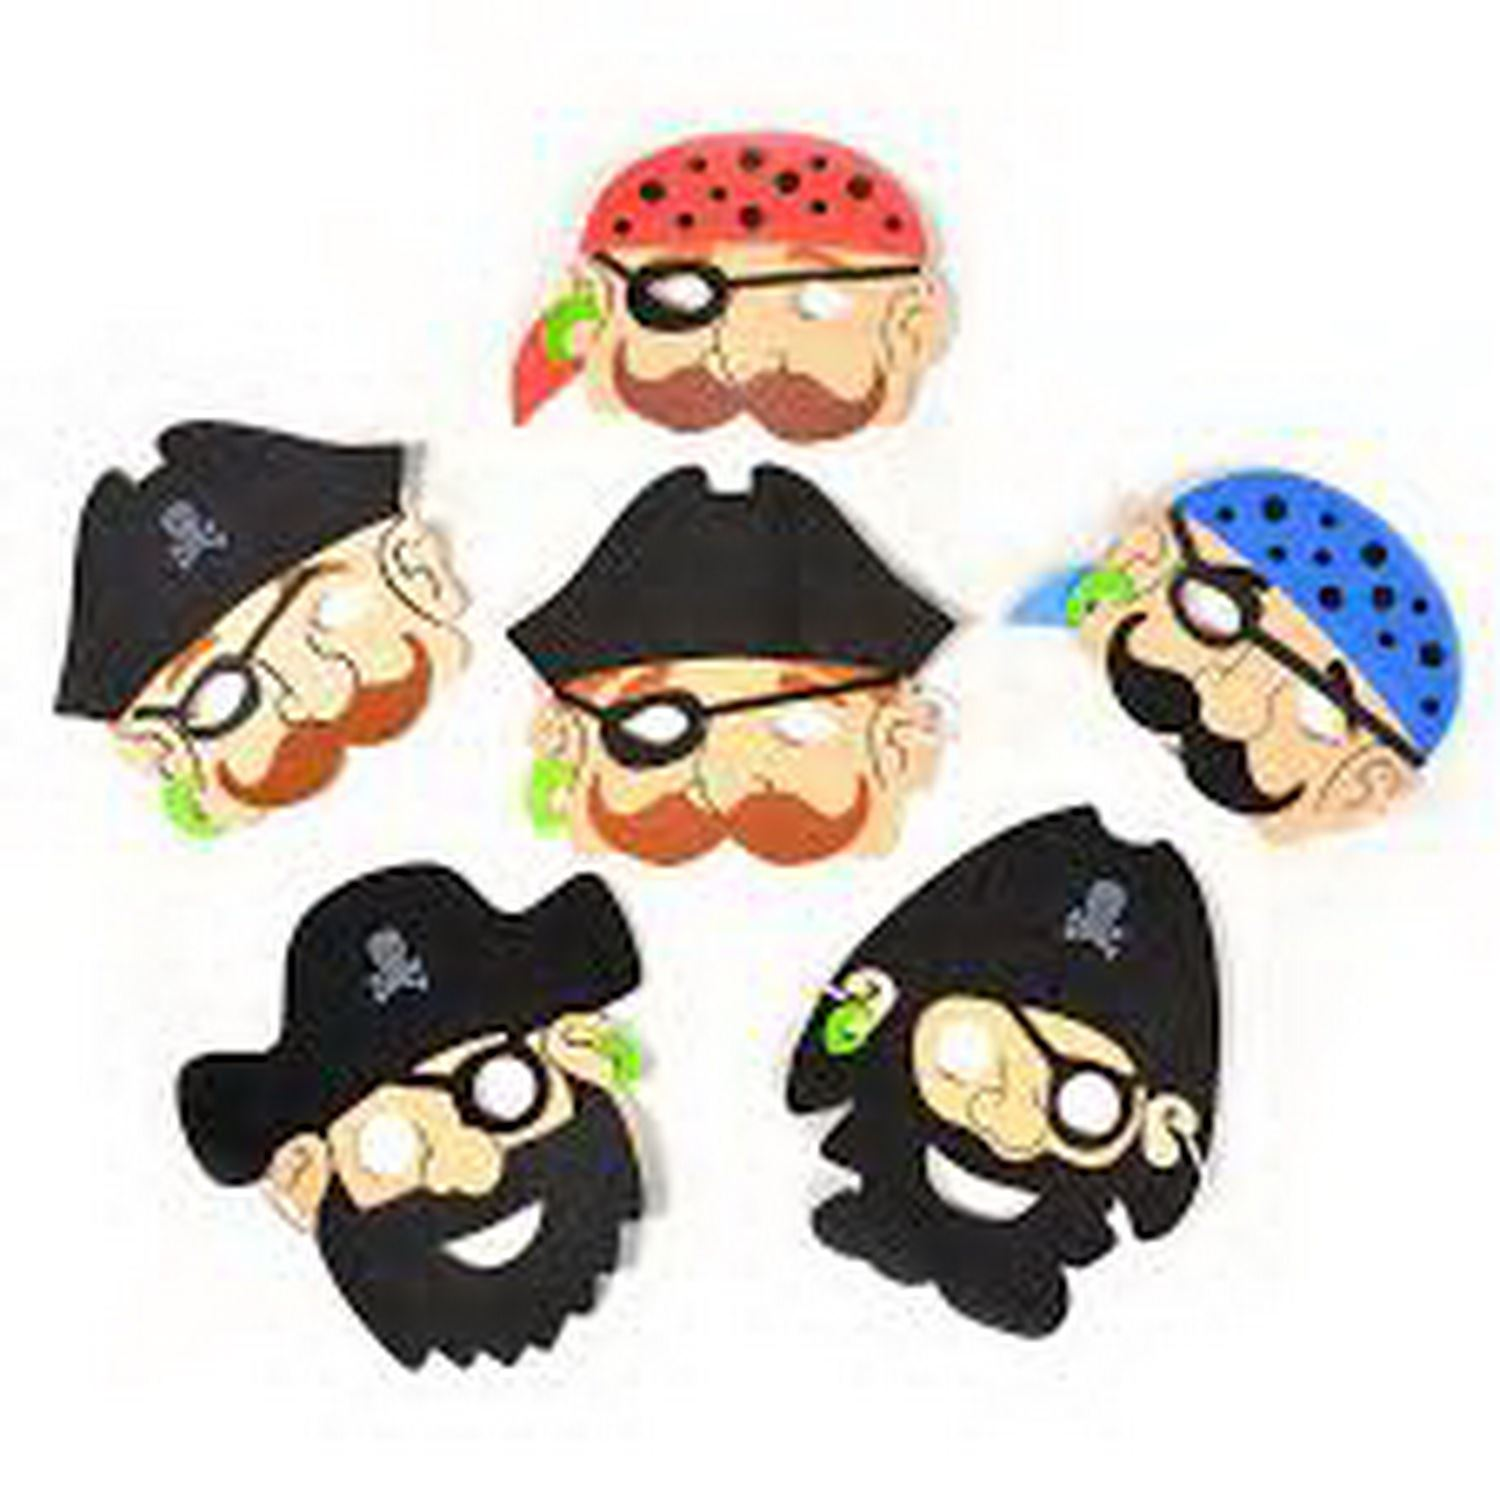 6 Foam Pirate Masks Pinata Toy Loot Party Bag Fillers Favour Fancy Dress Kids by